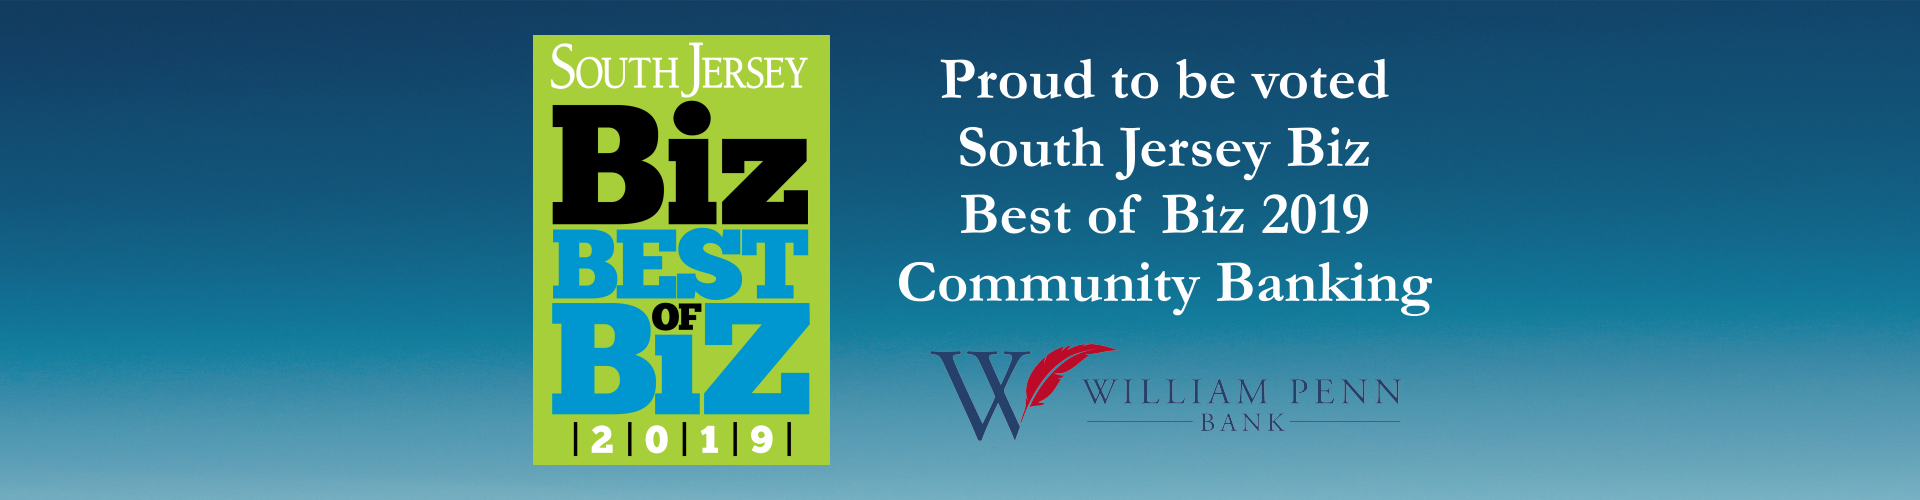 Proud to be voted South Jersey Biz Best of Biz 2019 Community Banking